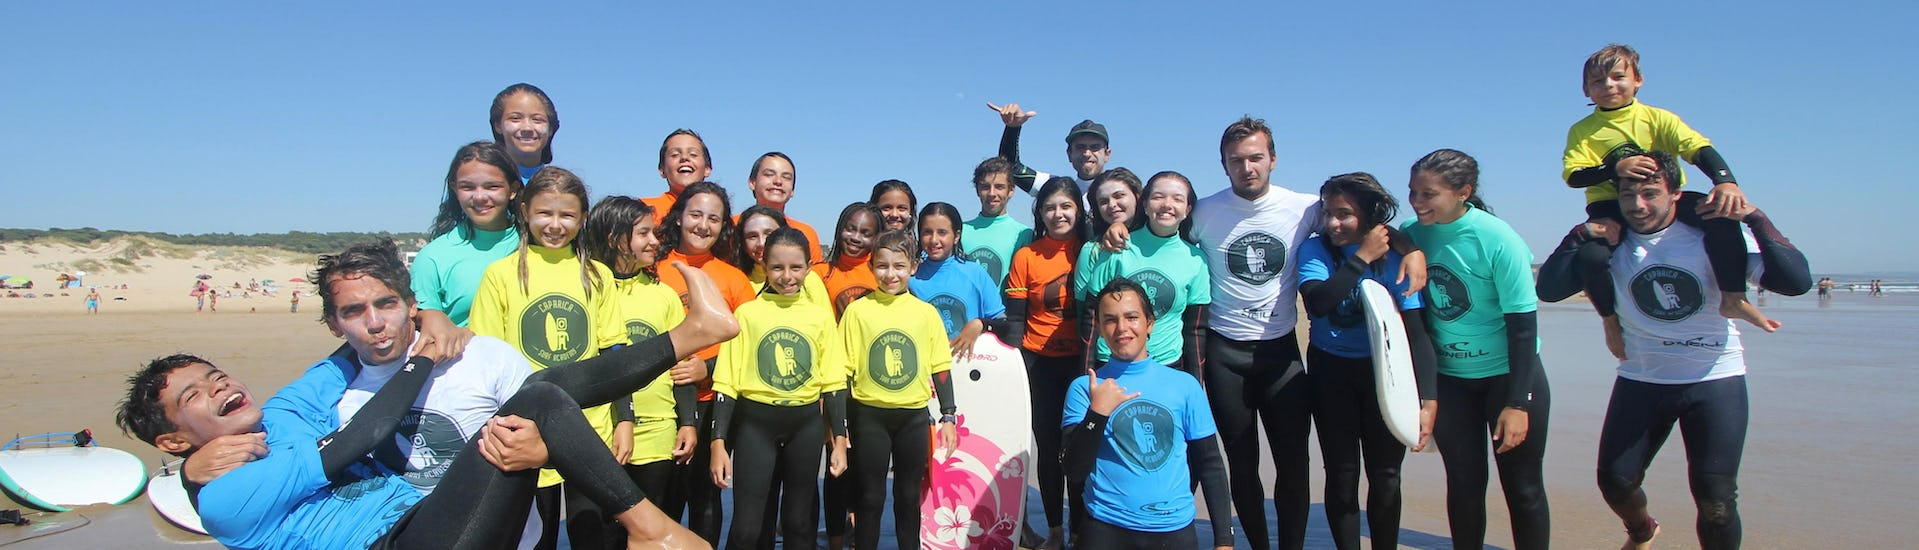 Surfing Lessons for Kids (3-7 Years) - All Levels